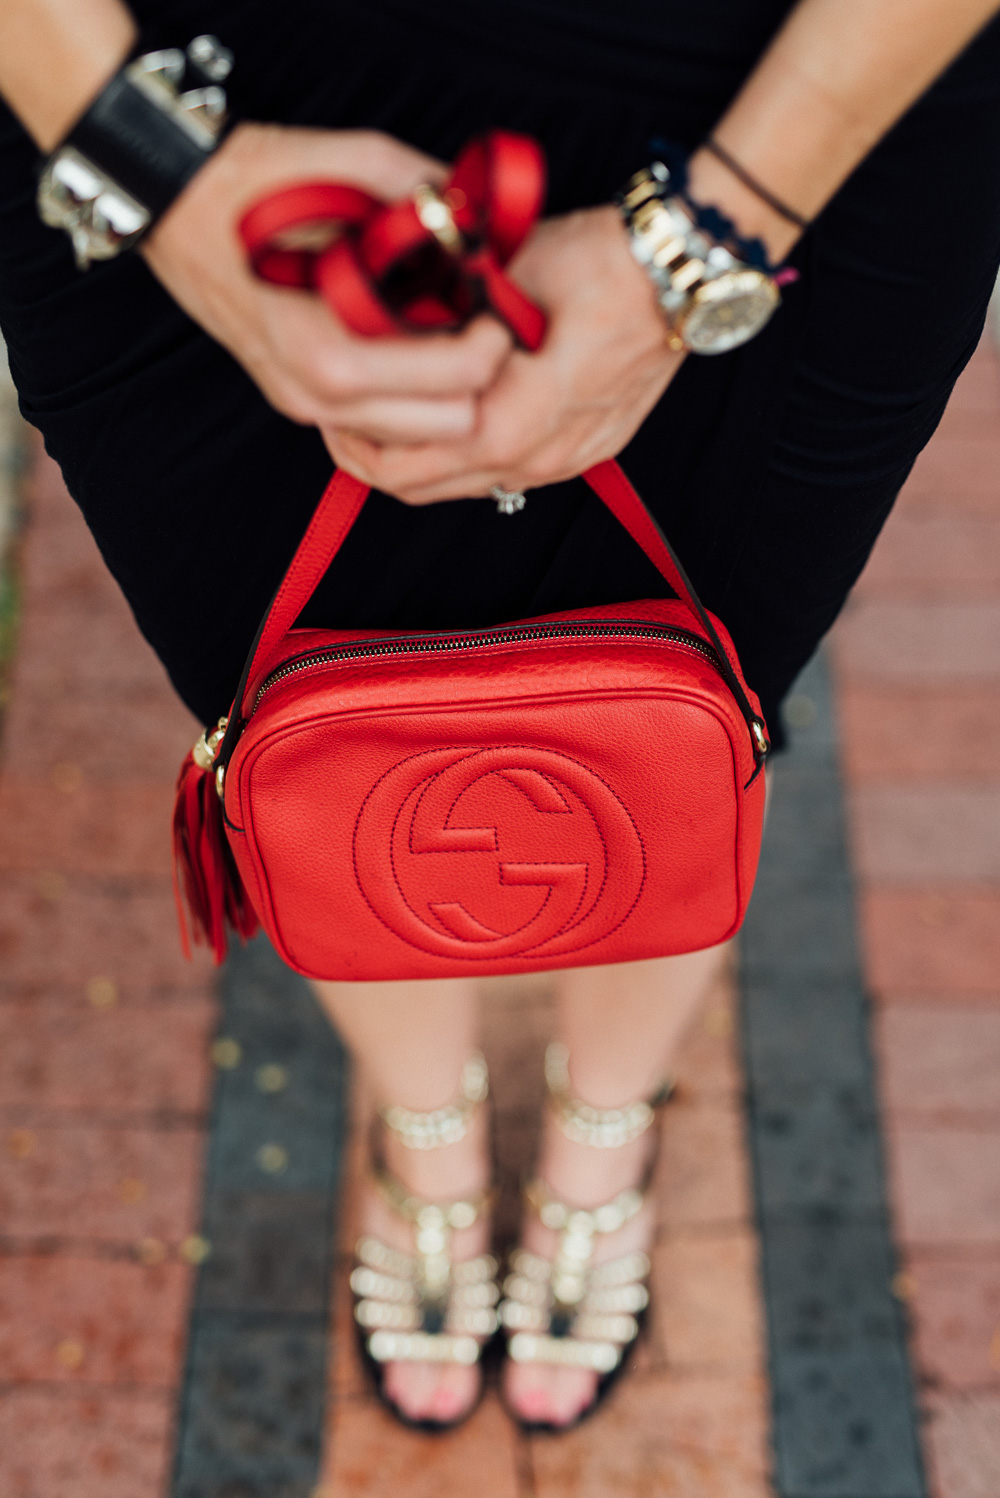 89583d8f205a Purseonals: Gucci Soho Disco Bag - PurseBlog